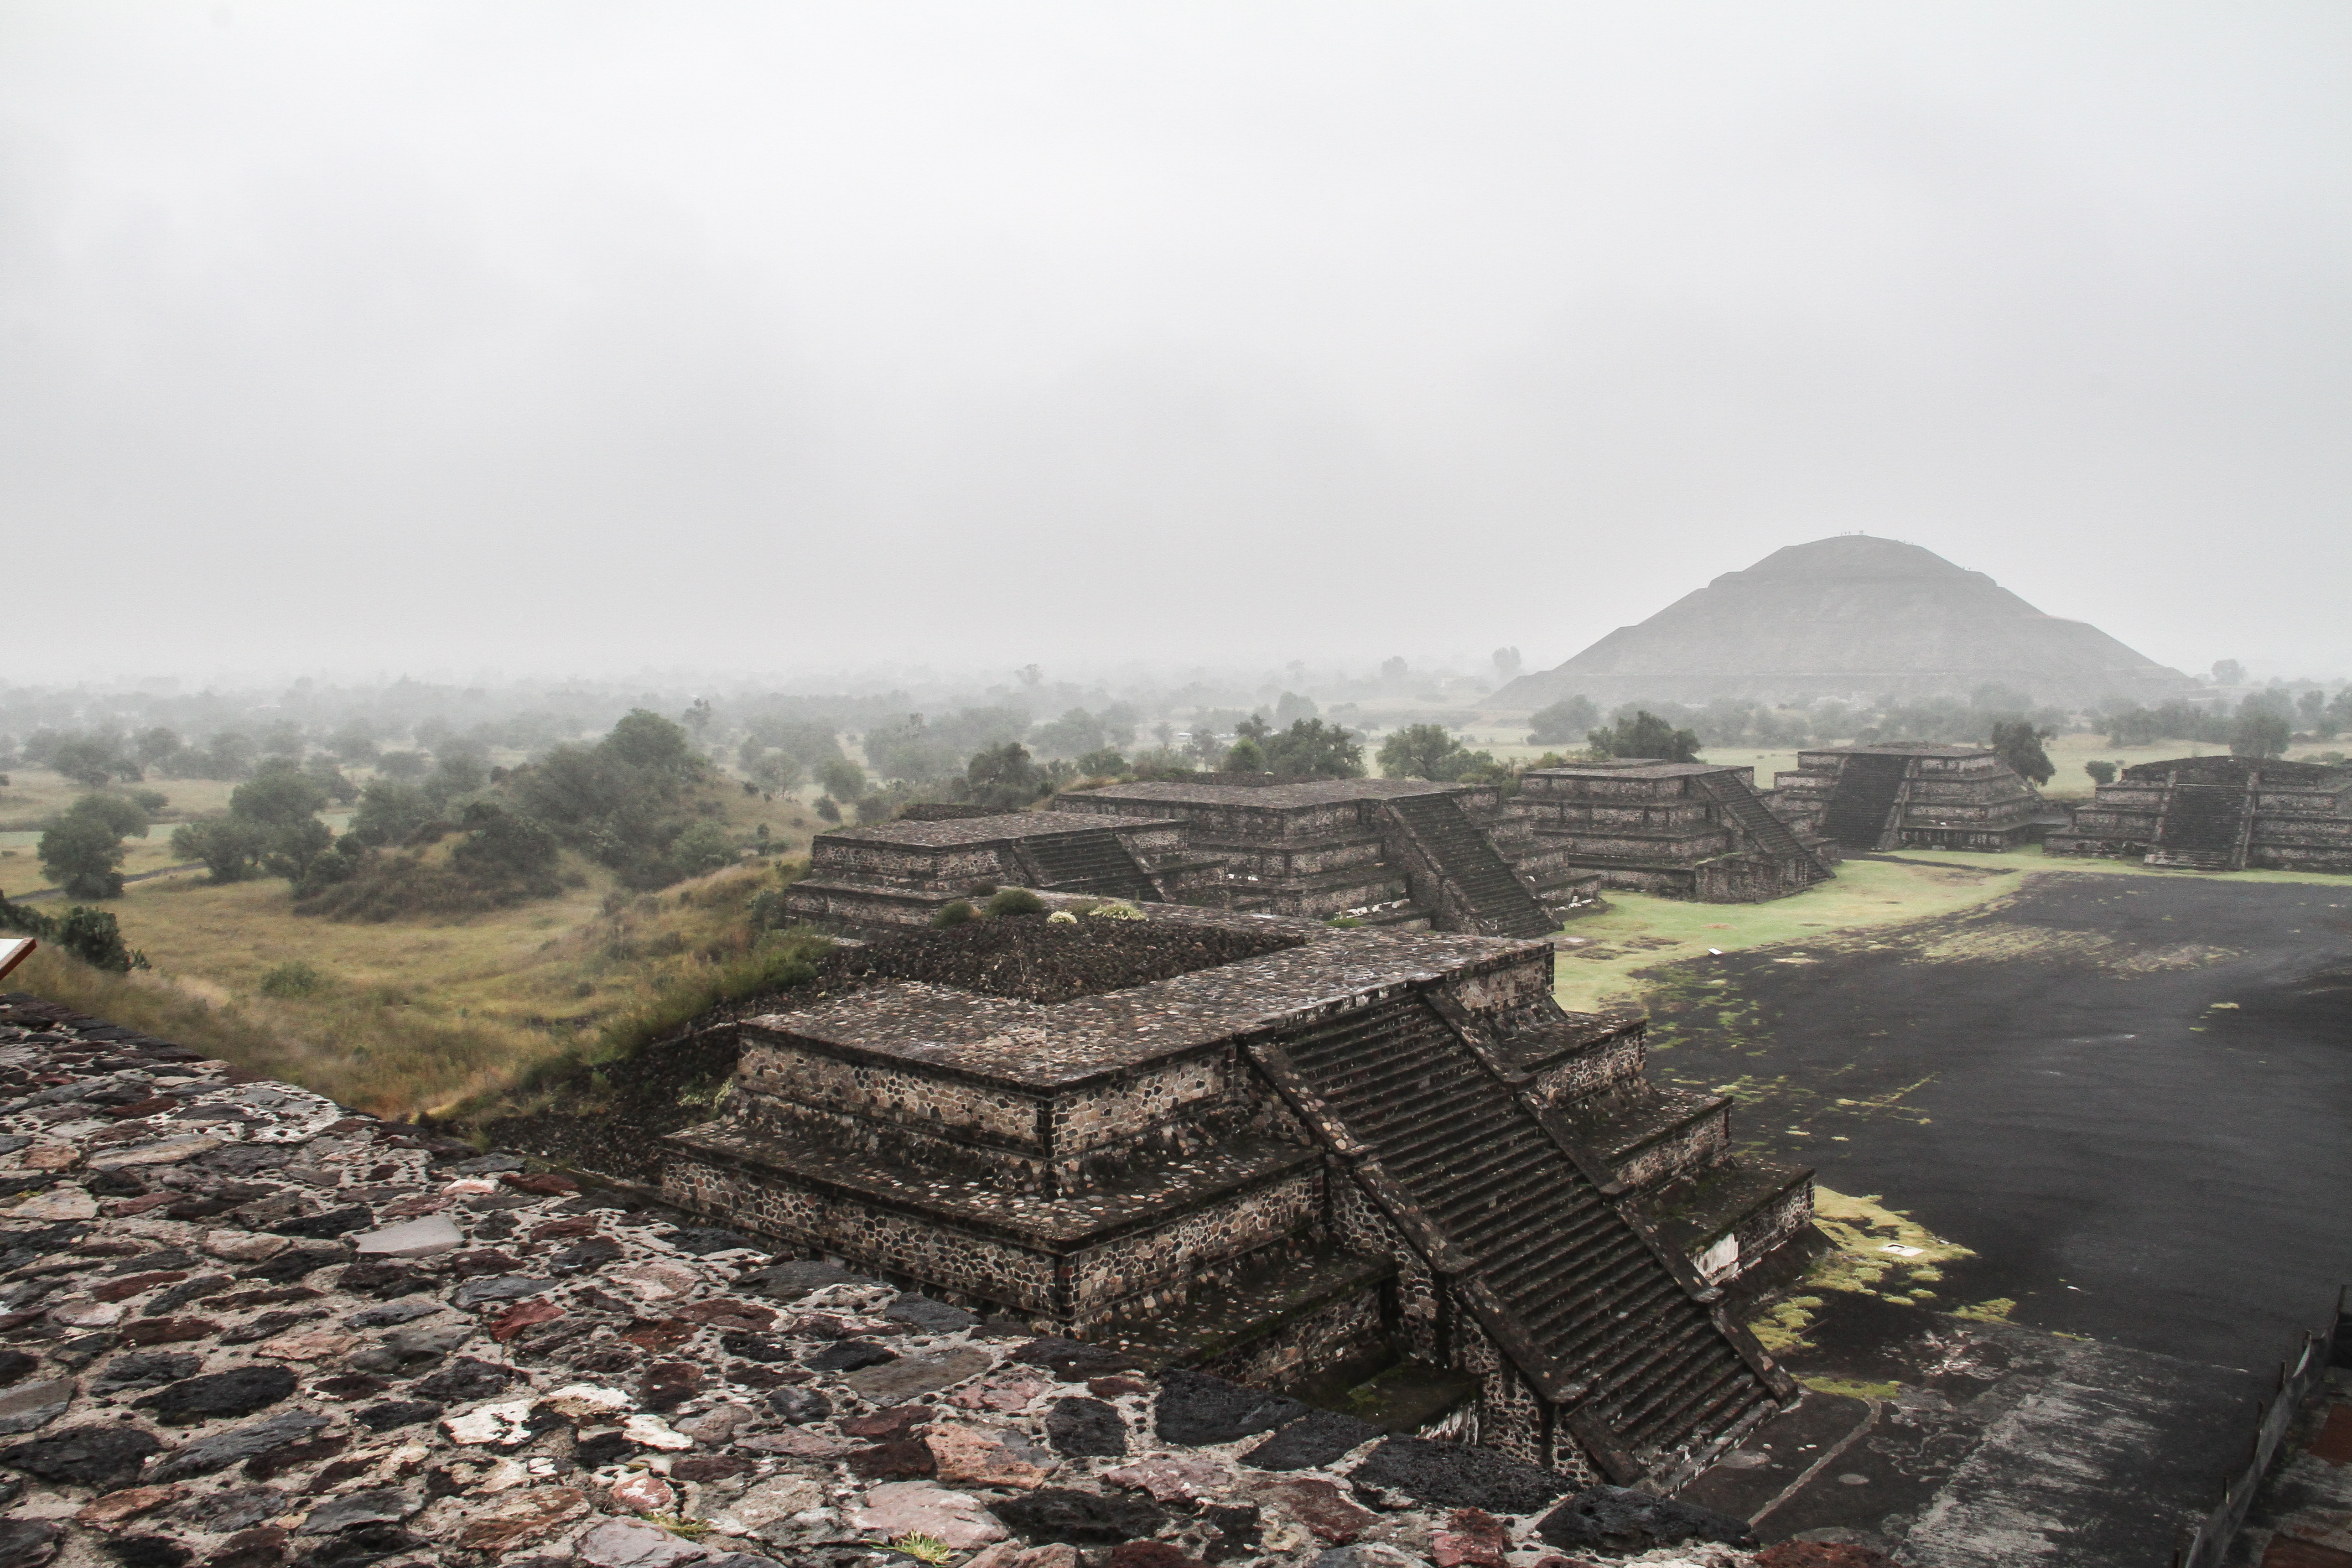 Teotihuacán is one of the biggest ghost towns in the world. The quest for its builders is one of the most fascinating challenges of today's archeology. Credit: Anika Dobringer/ Story House Productions